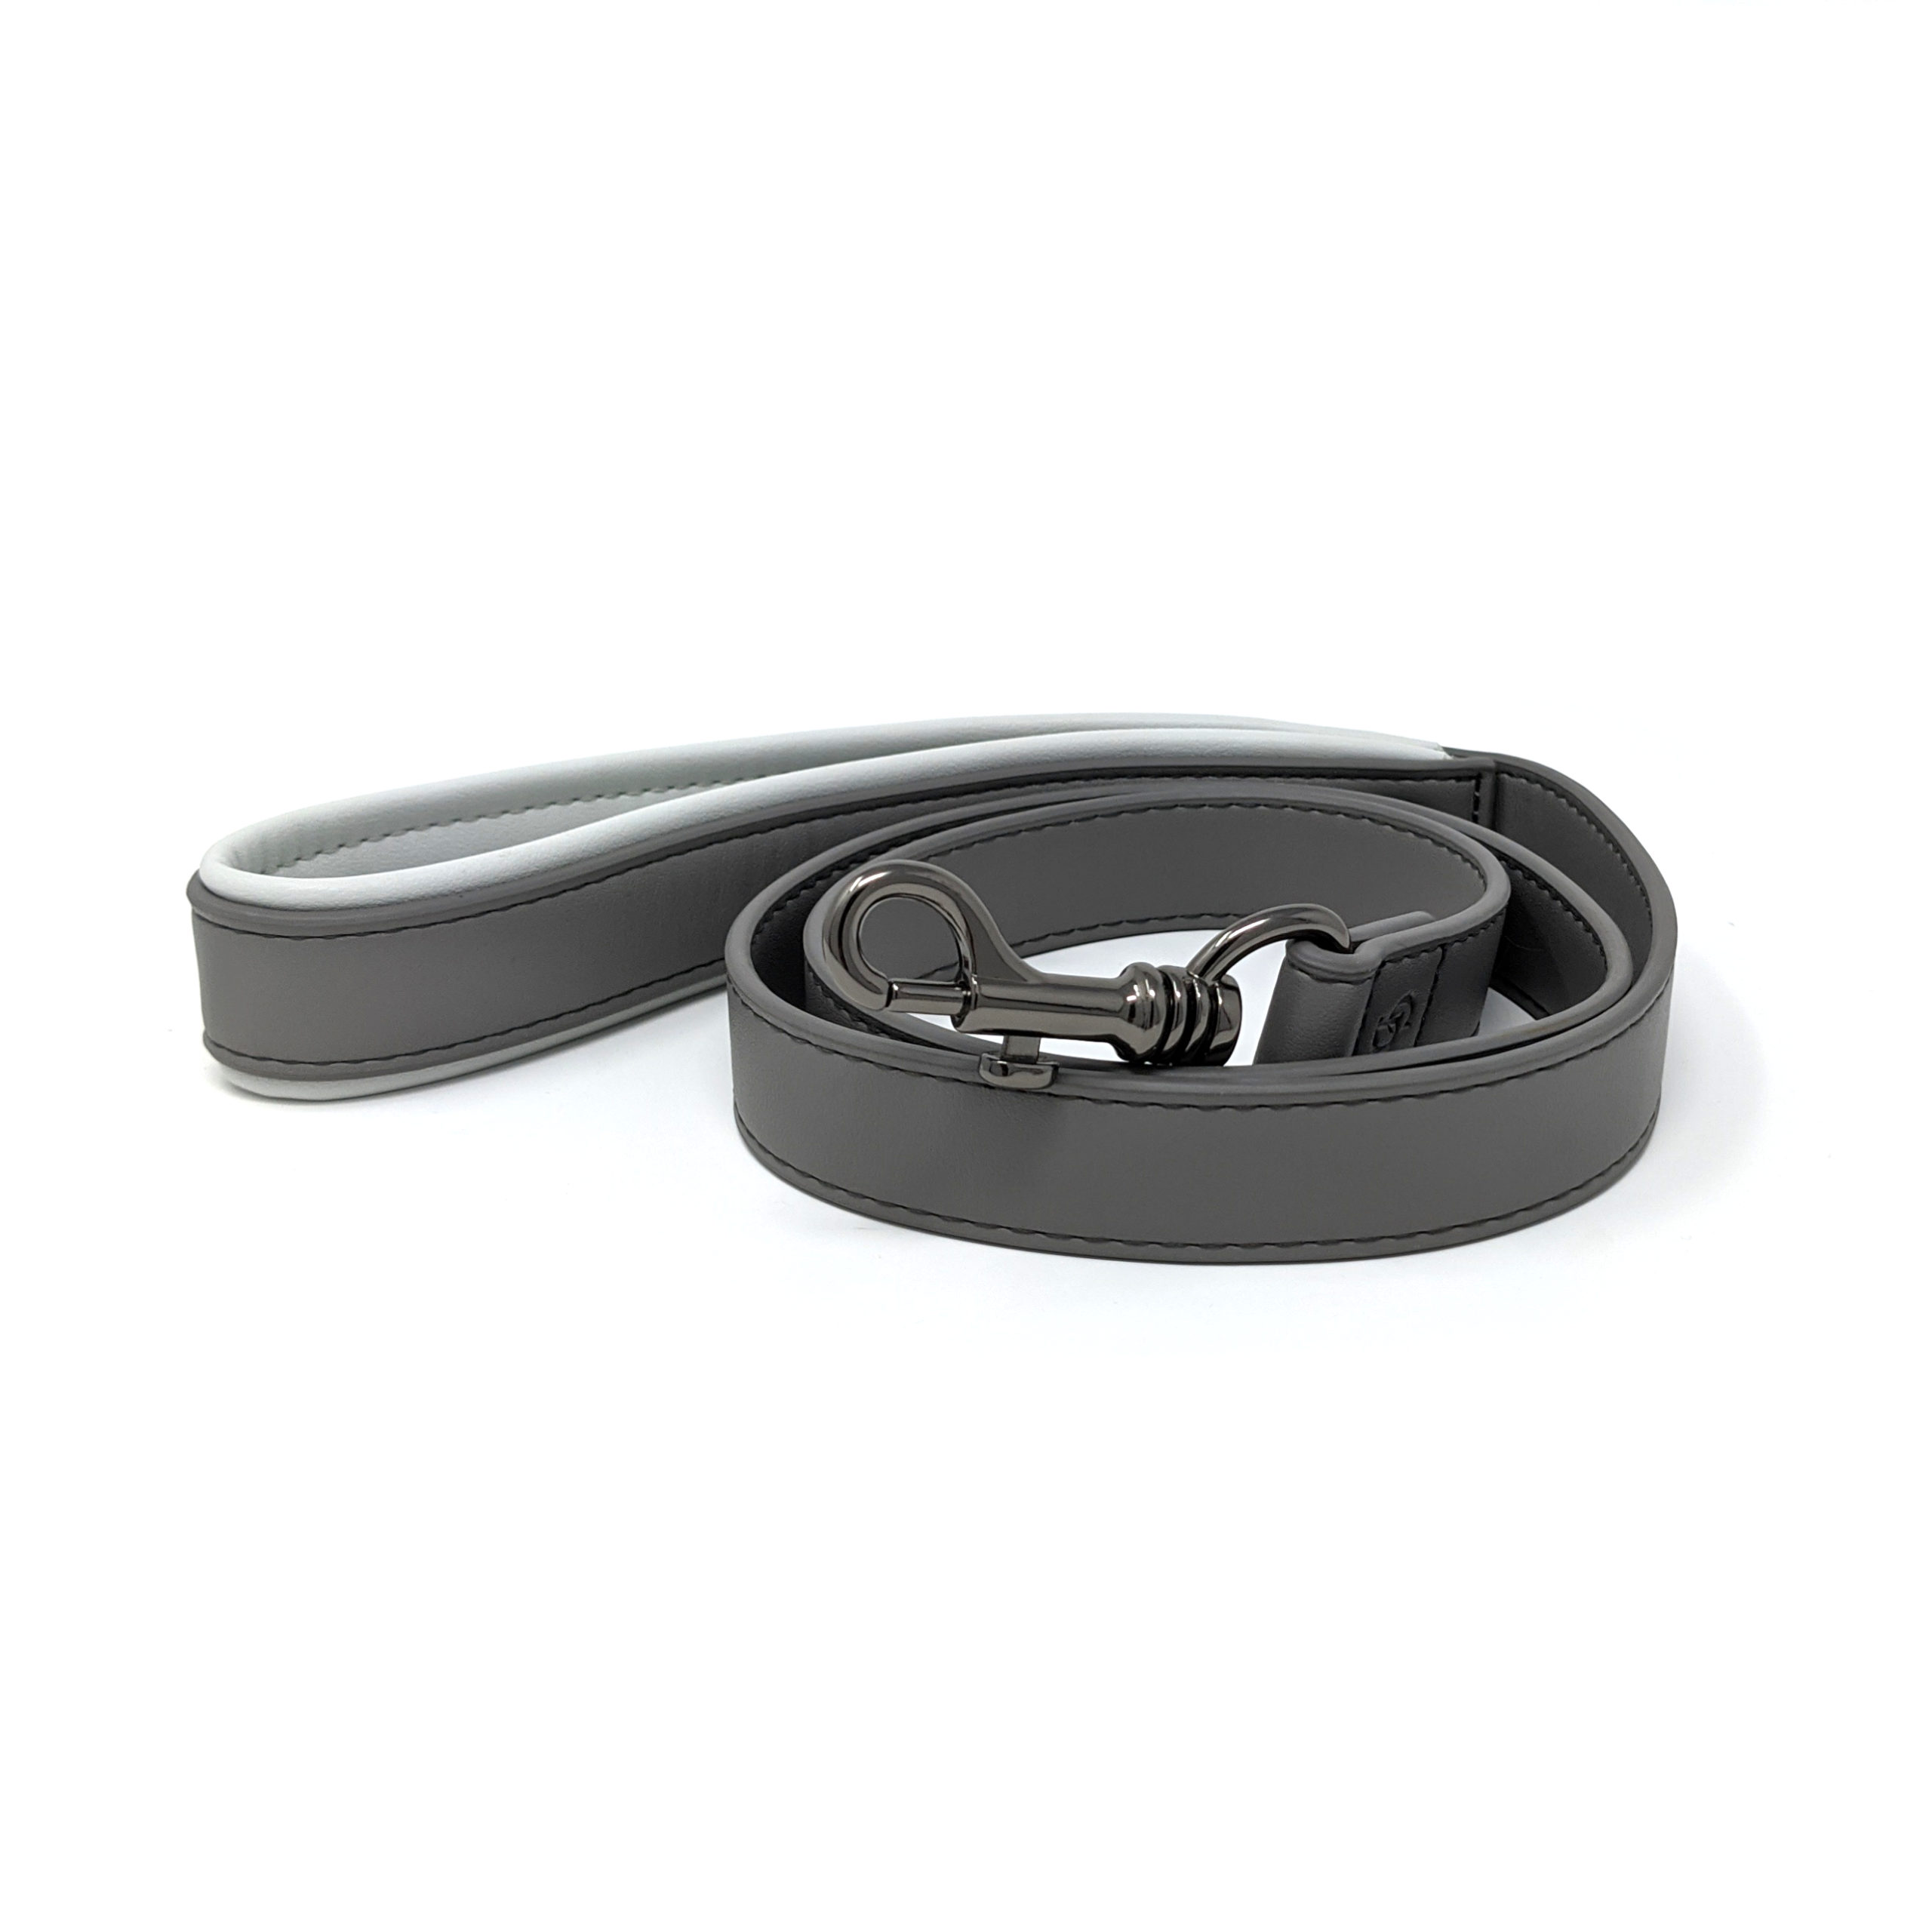 CatwalkDog Cambridge Leash in Grey